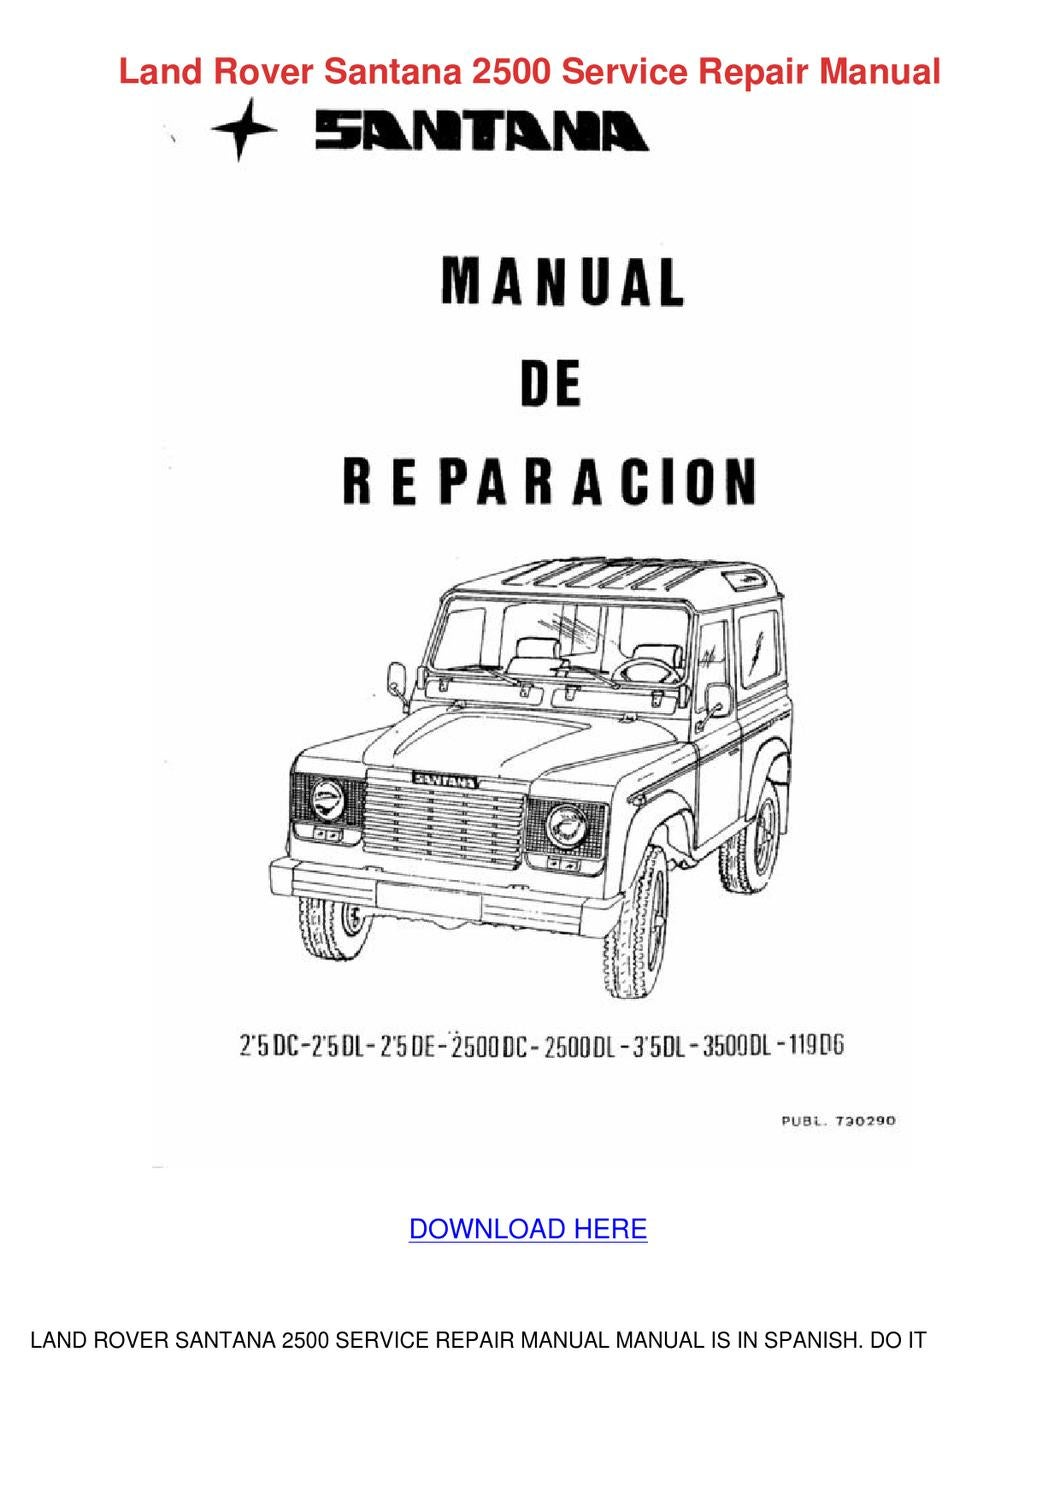 Land Rover Santana 2500 Service Repair Manual by